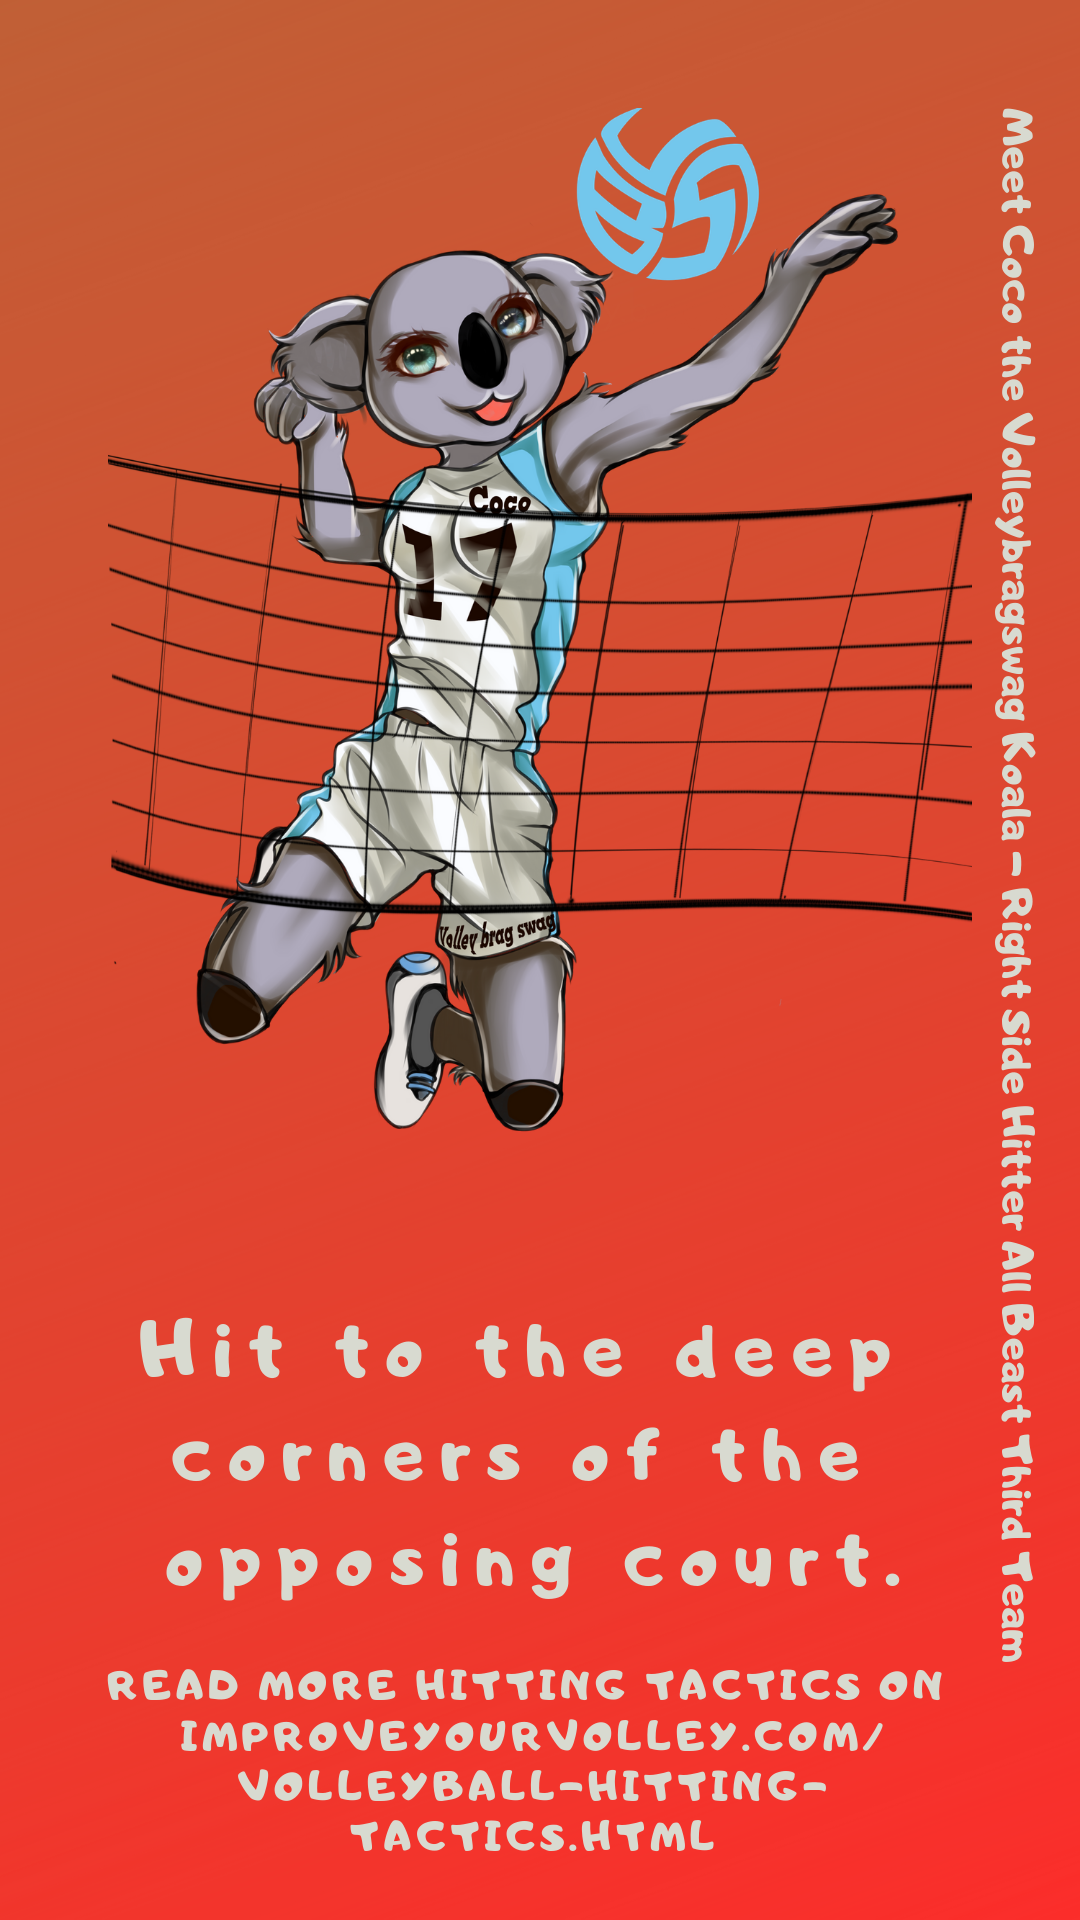 Hitting Tactics: Hit to the deep corners of the opposing court